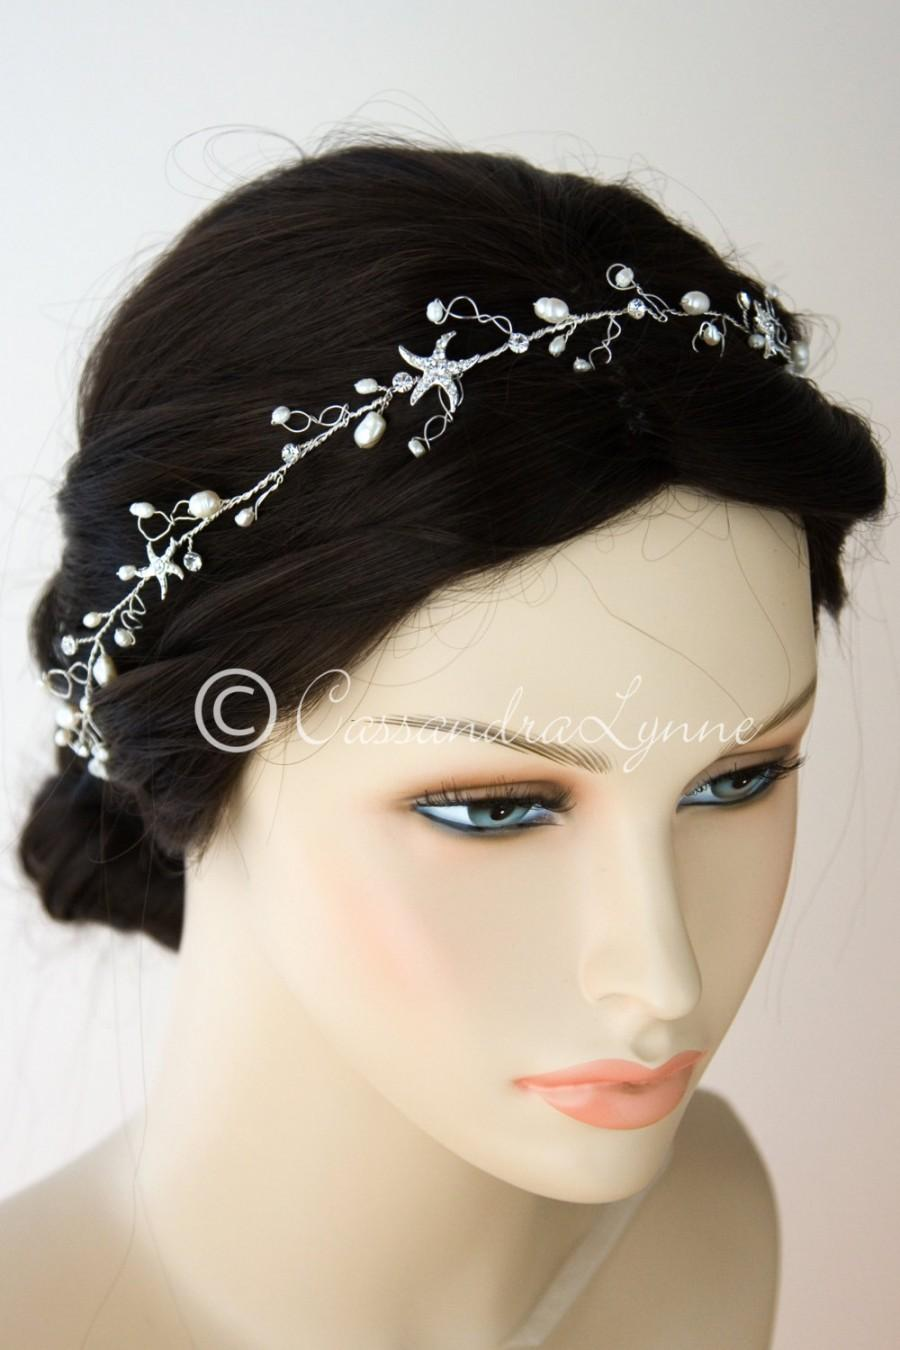 Mariage - Beach Wedding Rhinestone Starfish Bridal Hair Wrap Headband Forehead Freshwater Pearls Organza Ribbon Headpiece